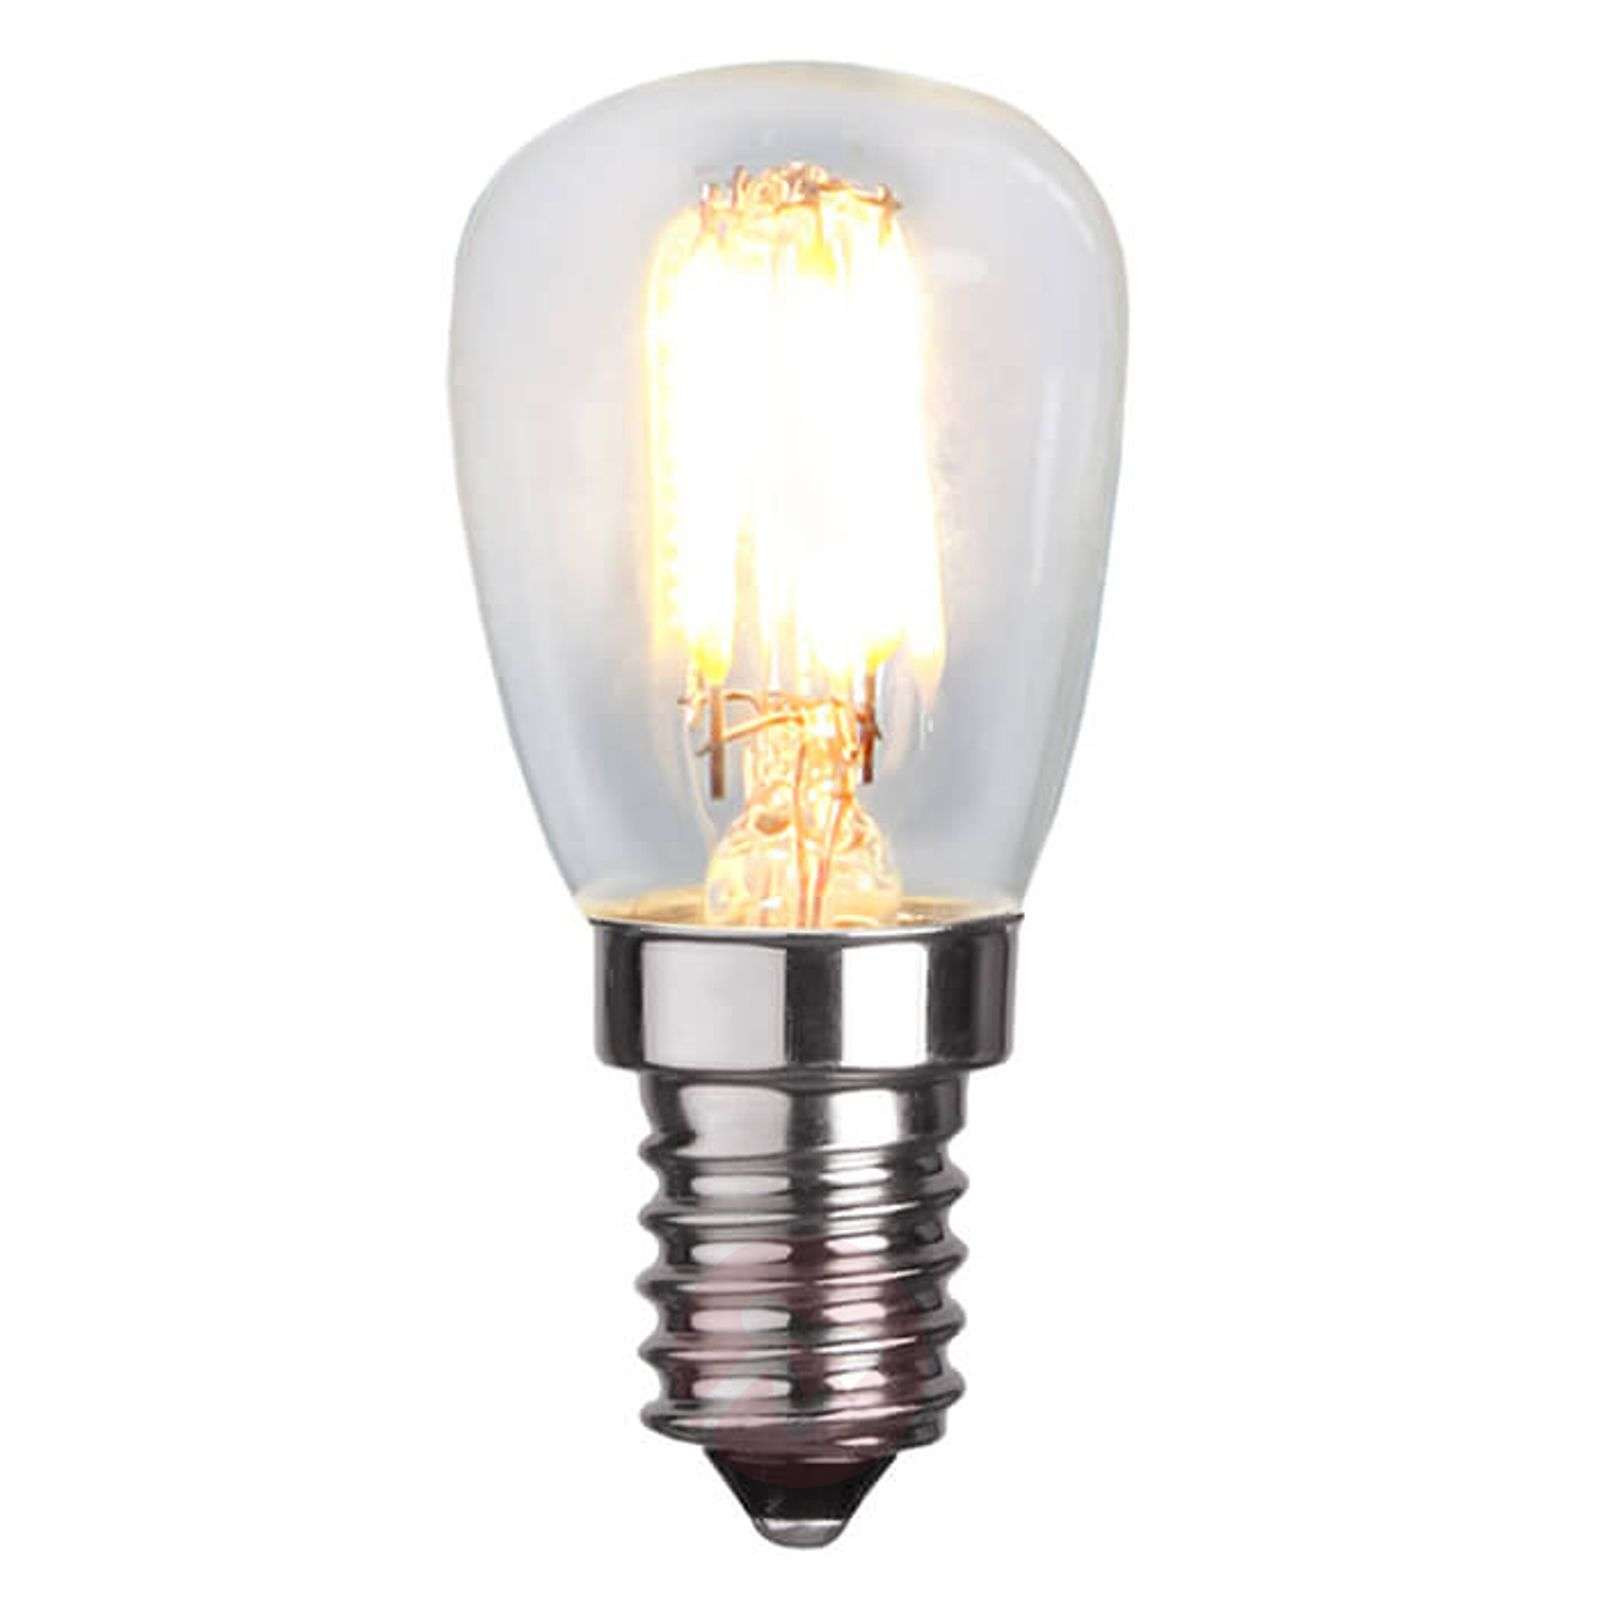 E14 2,8 W 827 ampoule LED, dimmable-1523122-01